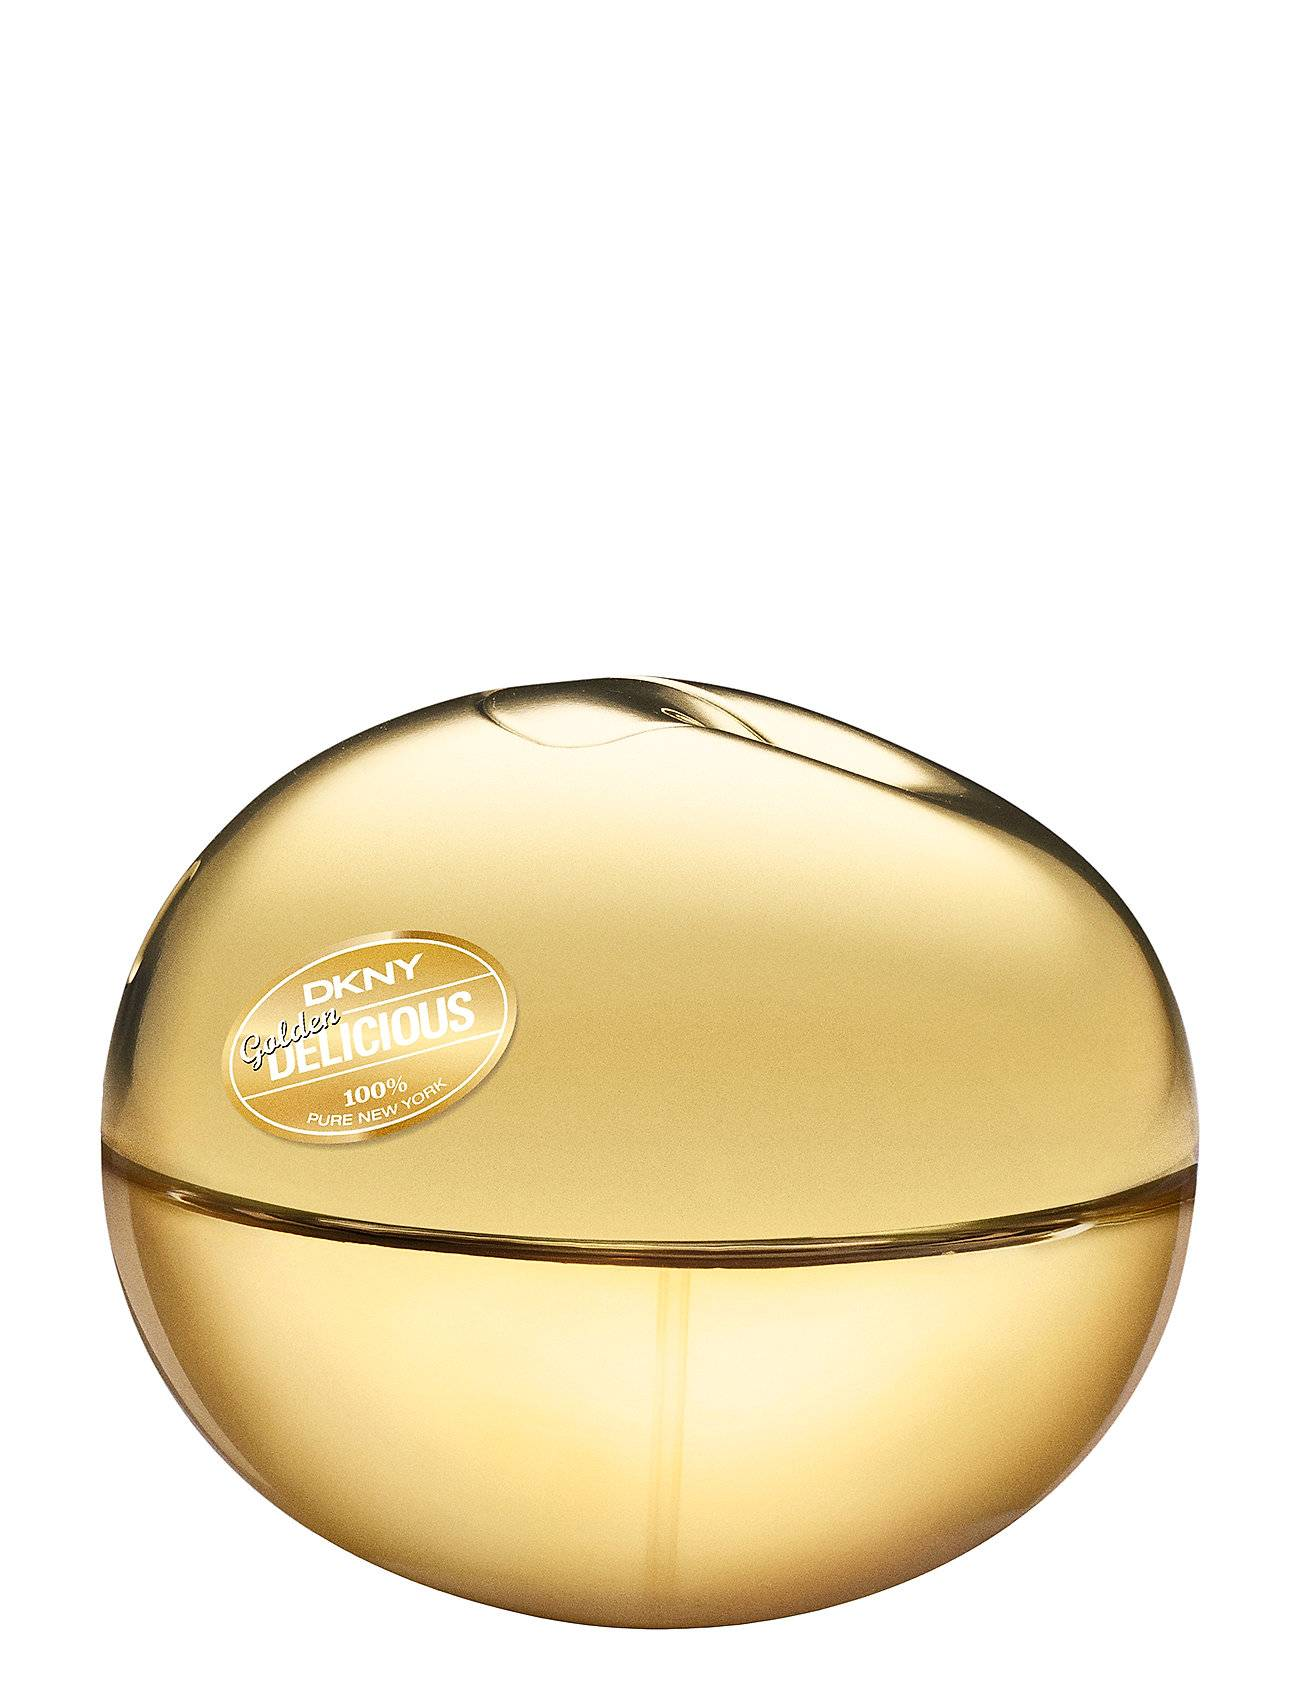 Donna Karan/DKNY Fragrance Golden Delicious Eau Deparfum